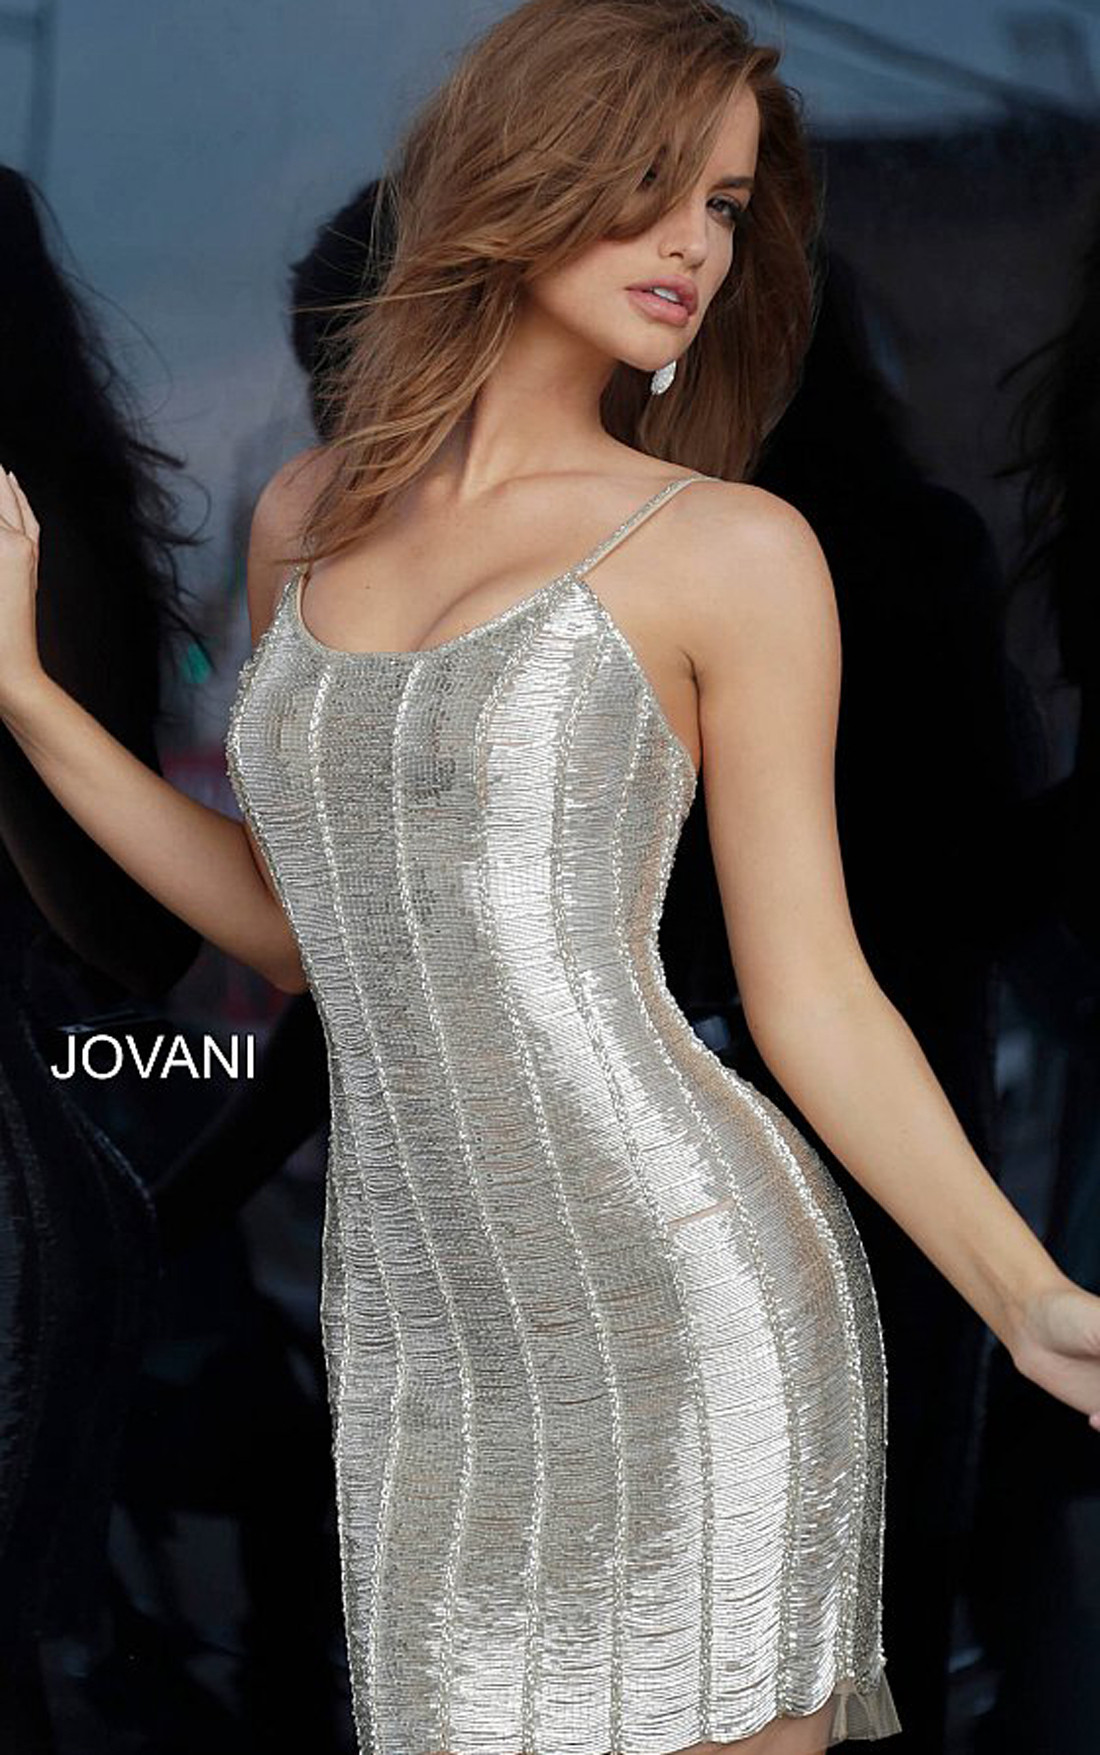 Jovani - Nude Beaded Cocktail Dress (1861)